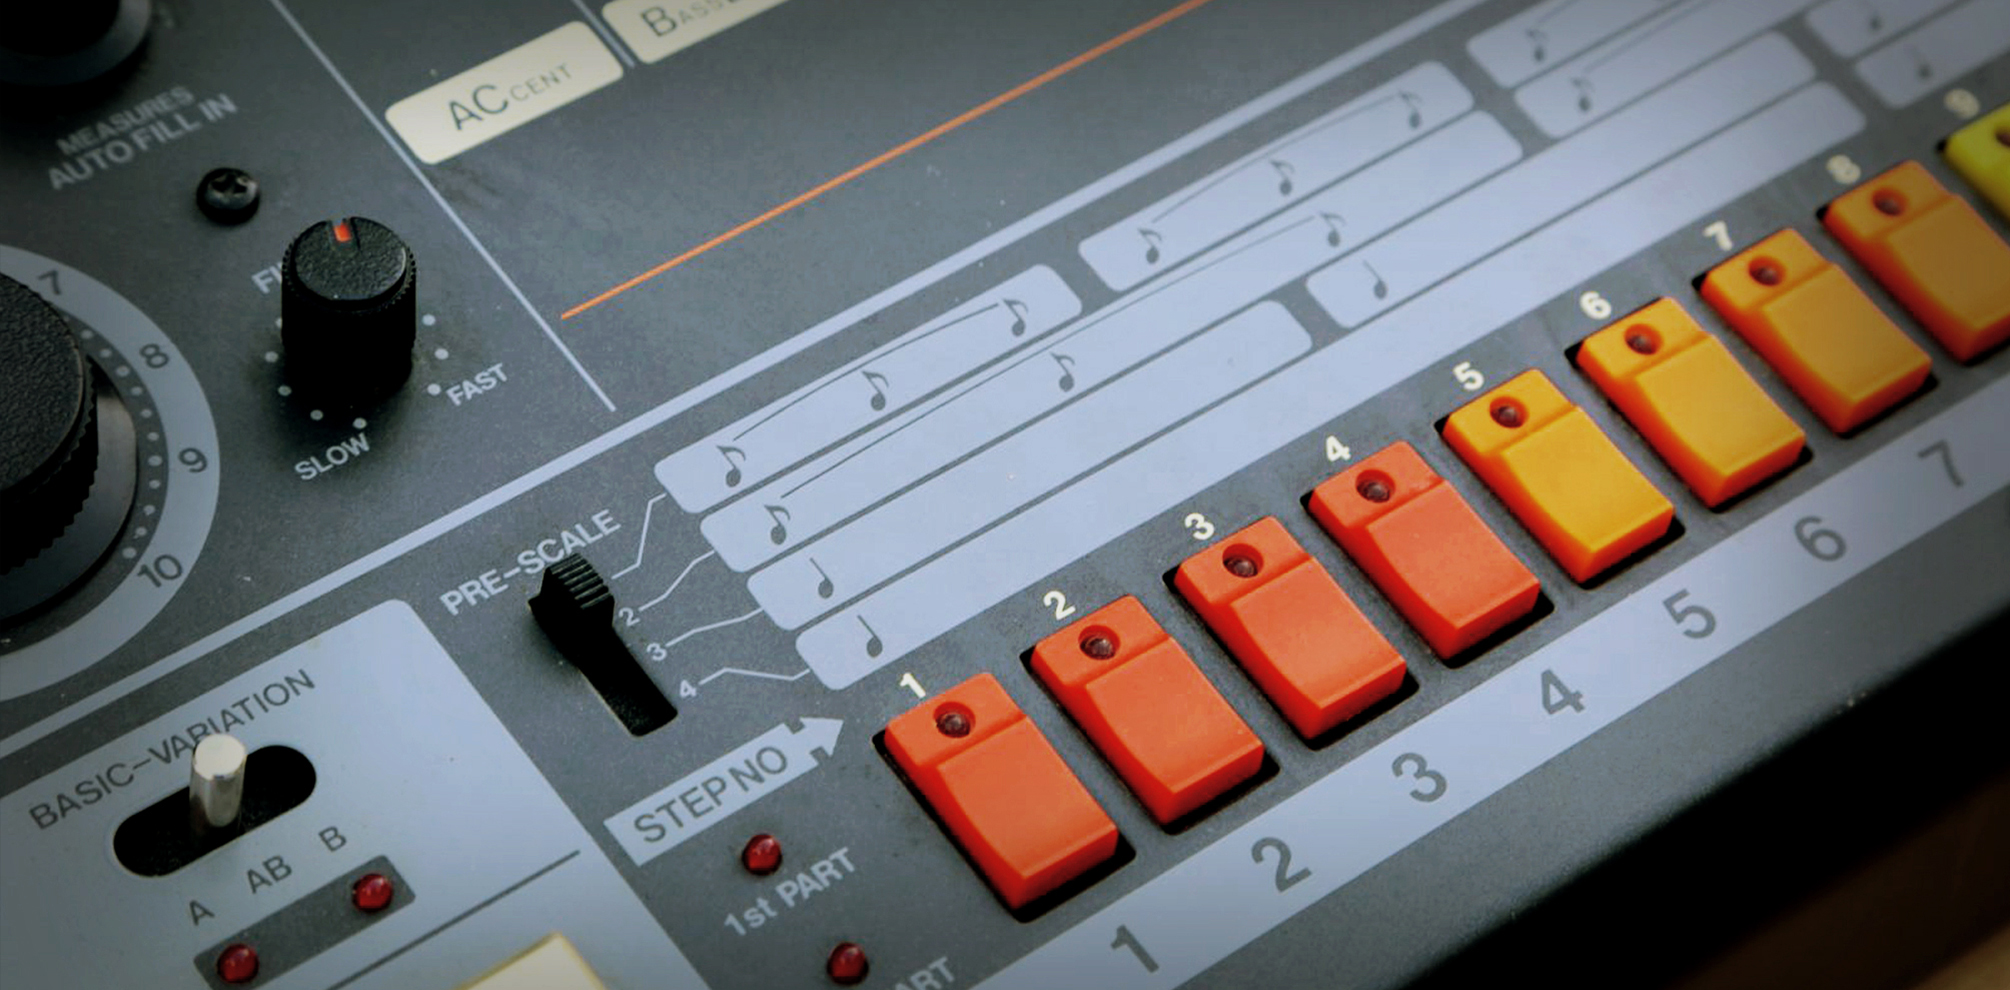 Roland-808-blog-post-image-3